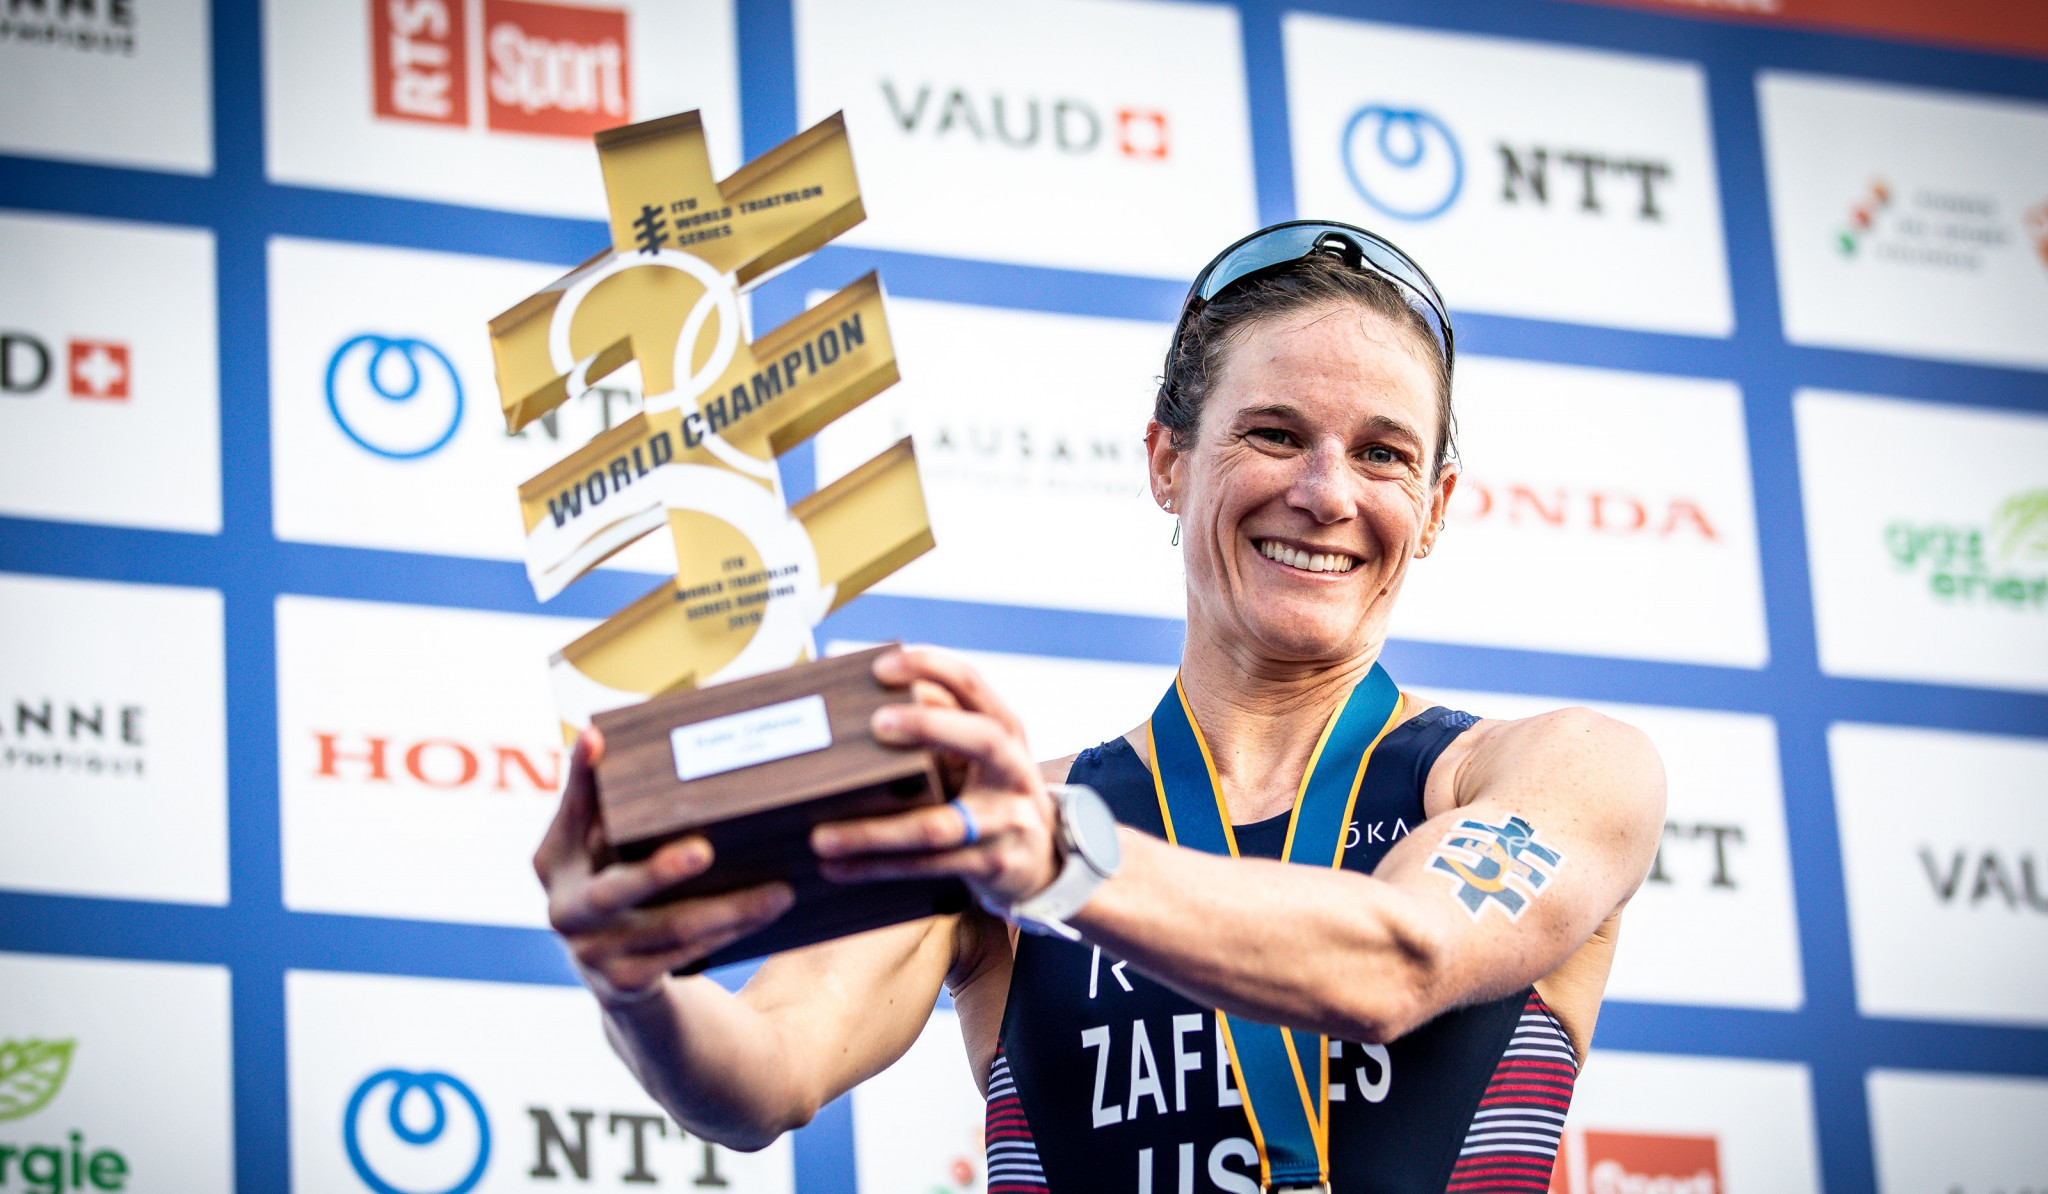 Zafares wins World Triathlon Grand Final to take overall world title